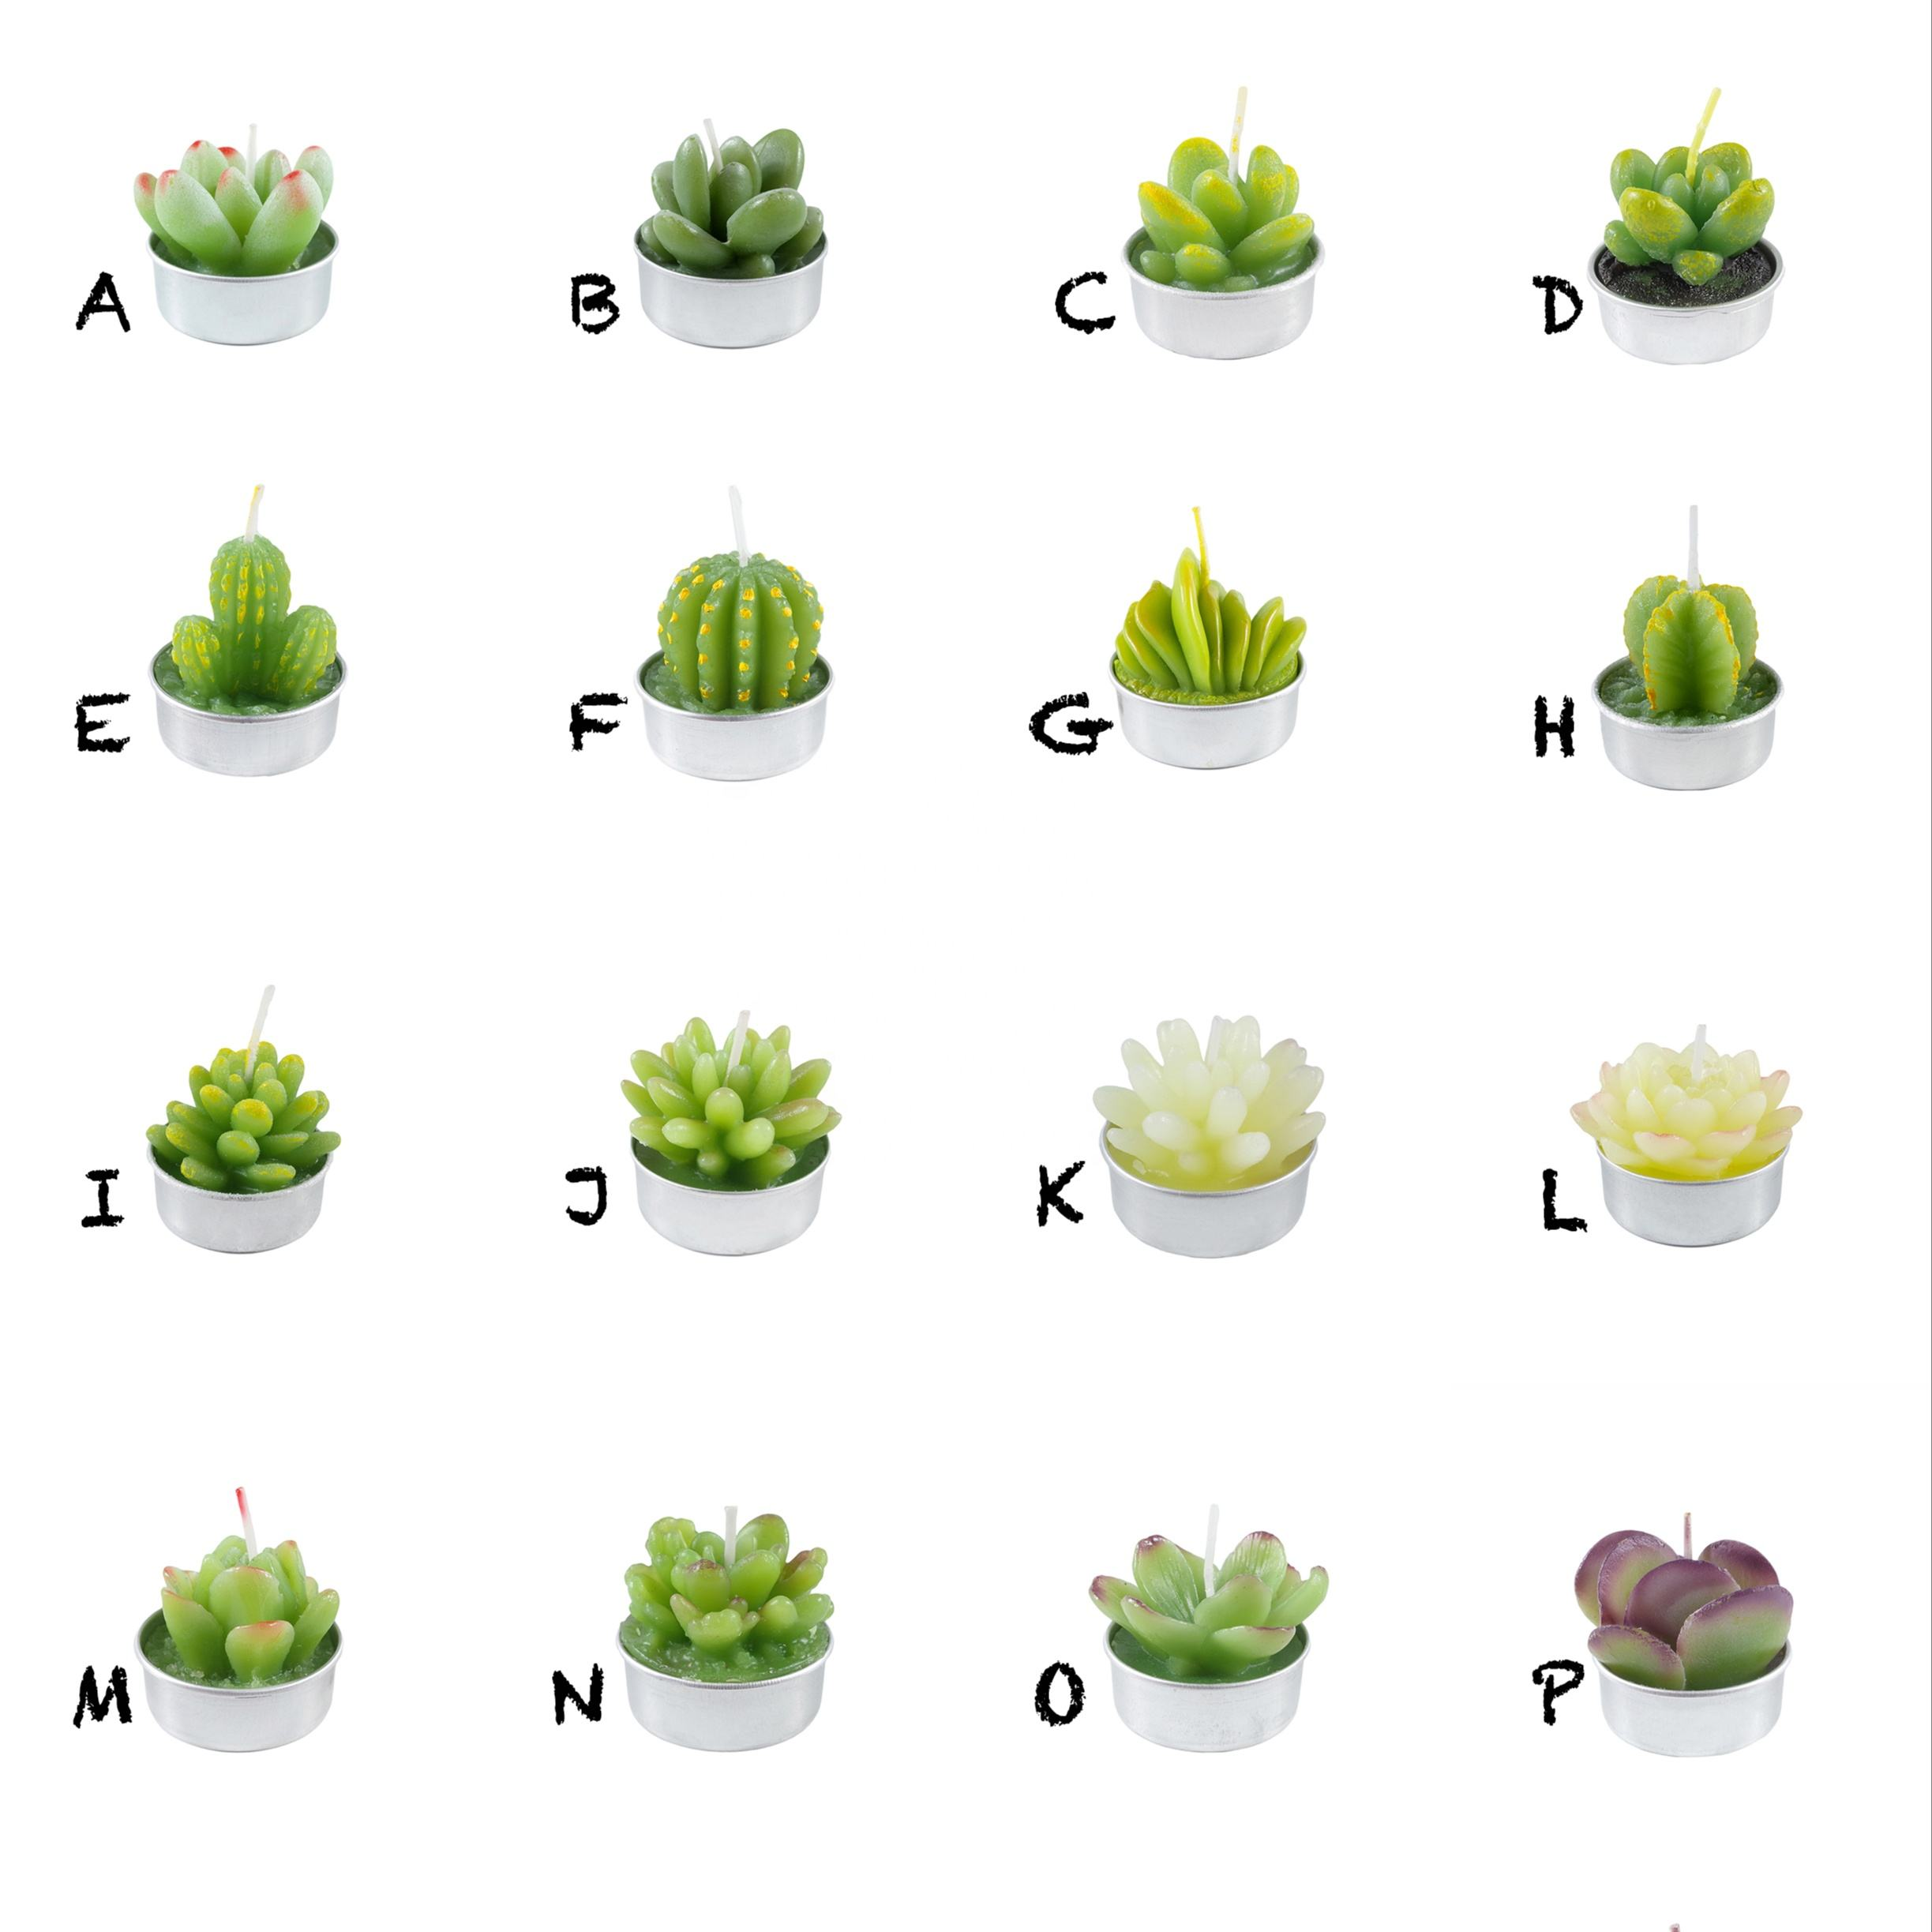 Cactus Tealight Candles, Handmade Delicate Succulent Scented Cactus Candles,Mini Tealight Candles Succulent plants candle